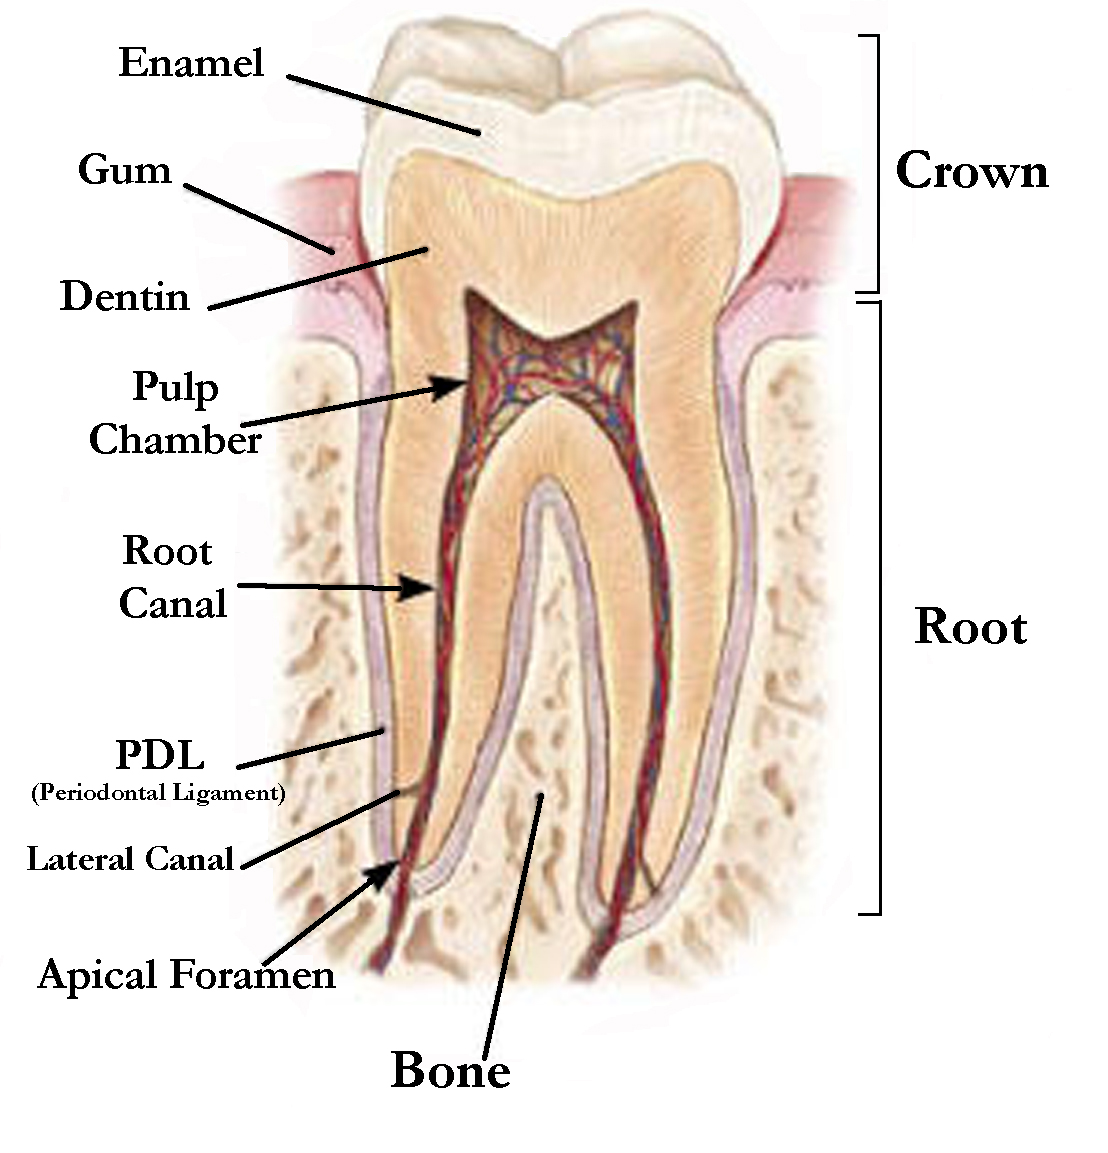 hight resolution of inside the tooth under the white enamel and a hard layer called the dentin is a soft tissue called the pulp the pulp contains blood vessels nerves